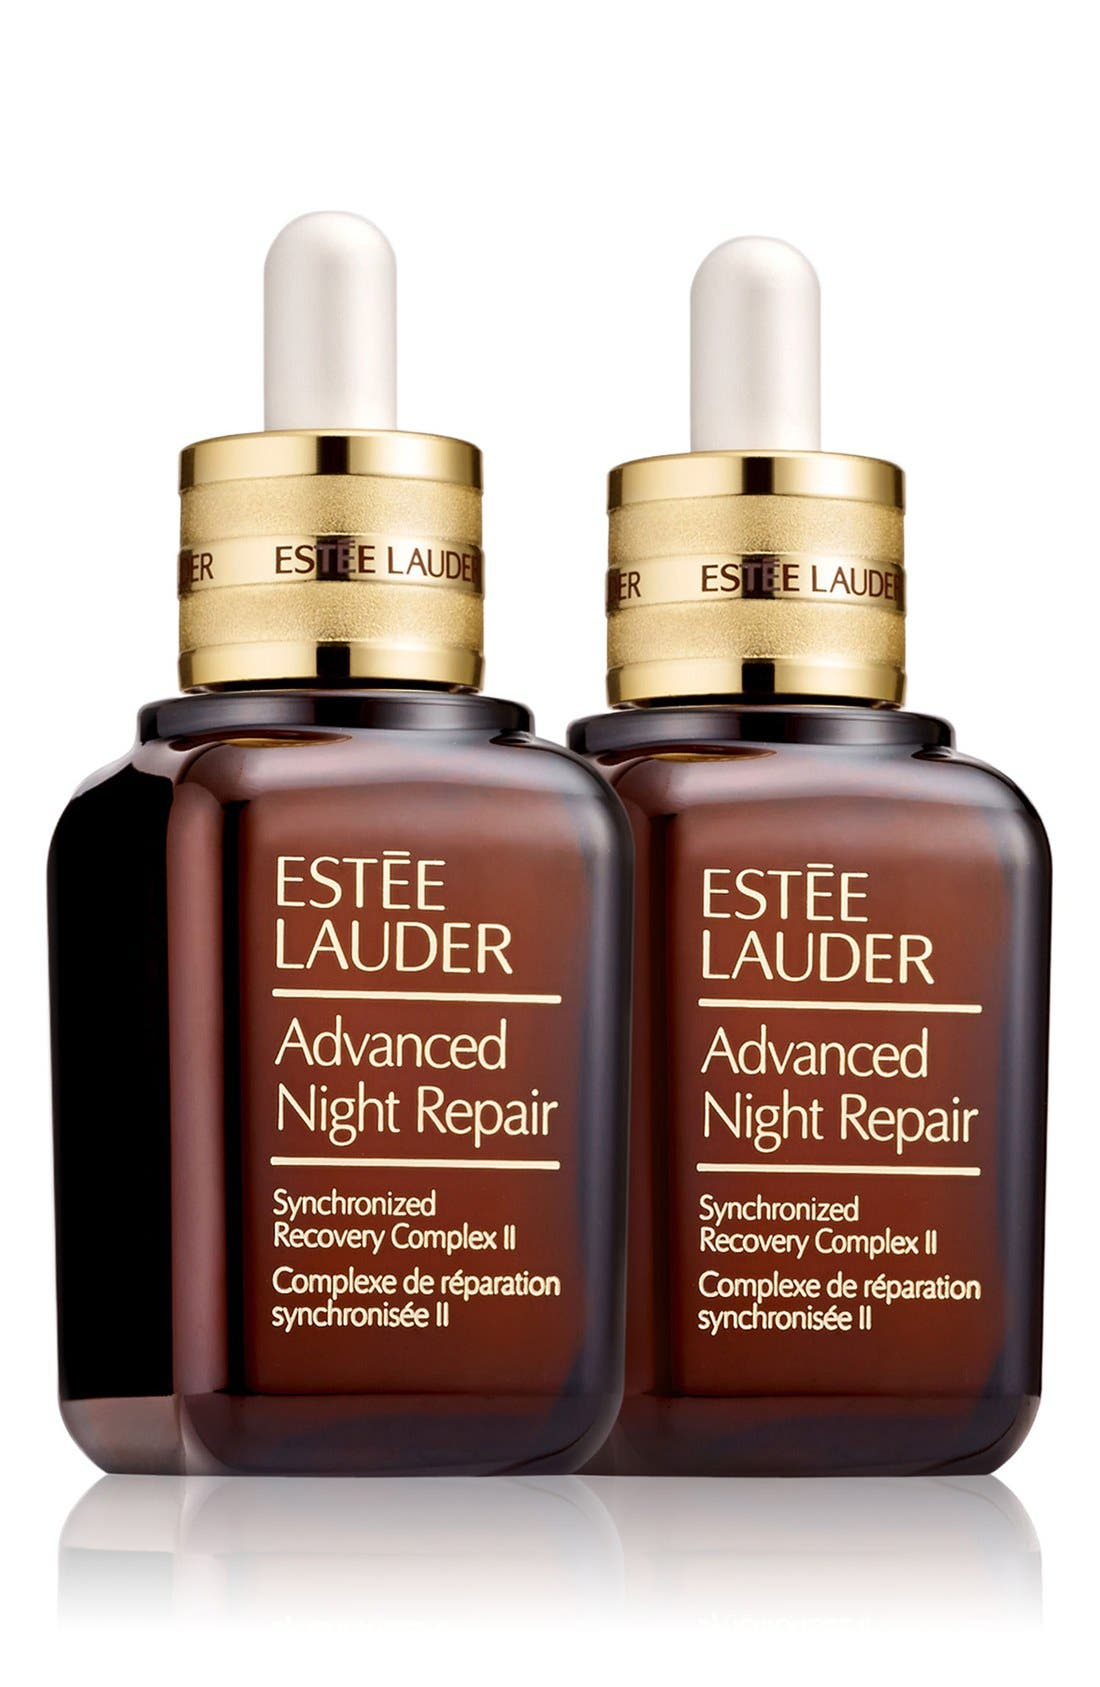 Estée Lauder Advanced Night Repair Synchronized Recovery Complex II Duo ($184 Value)